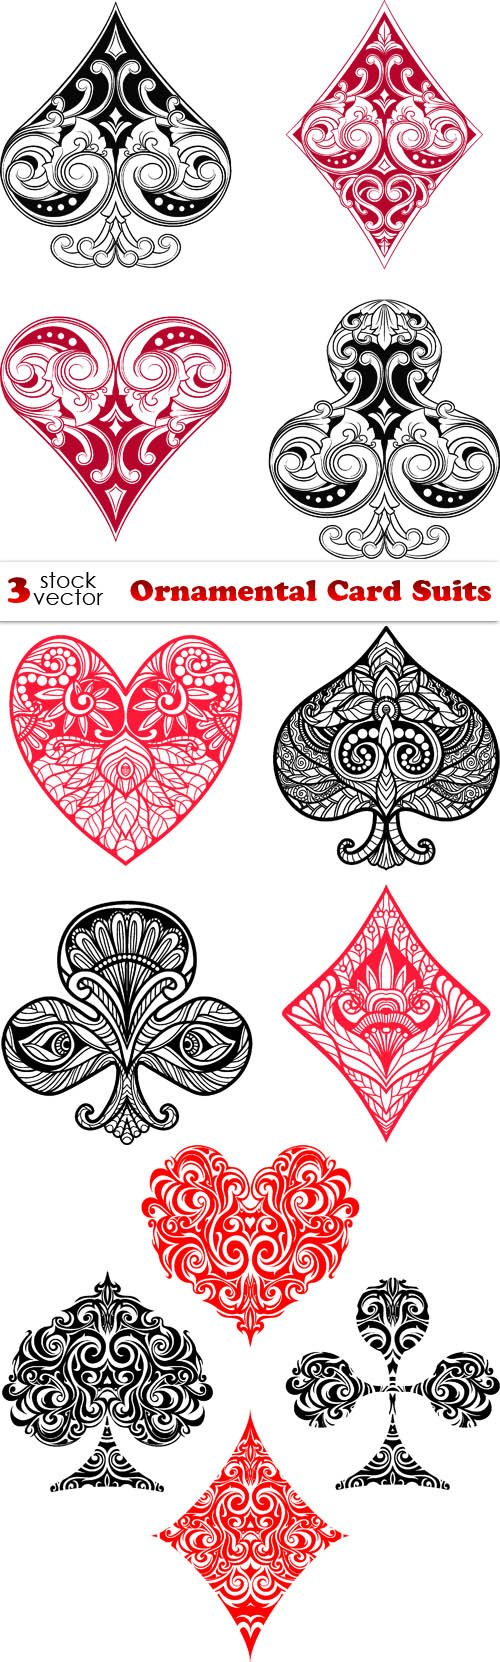 Vectors - Ornamental Card Suits